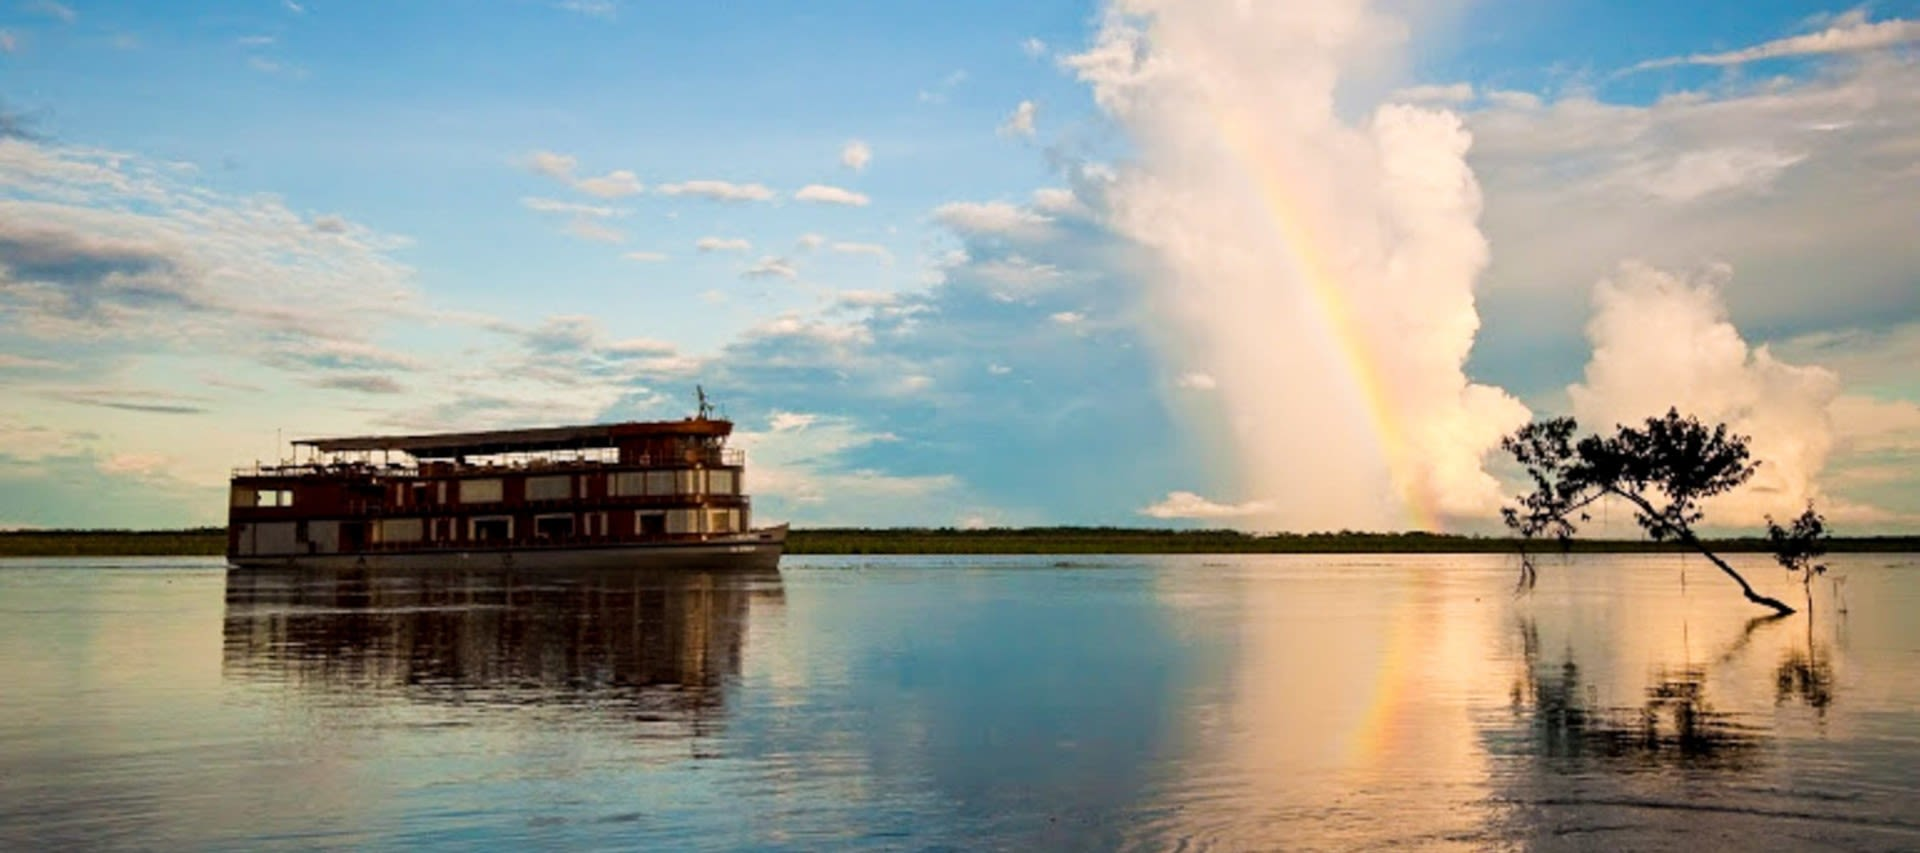 River cruise boat on Amazon with rainbow